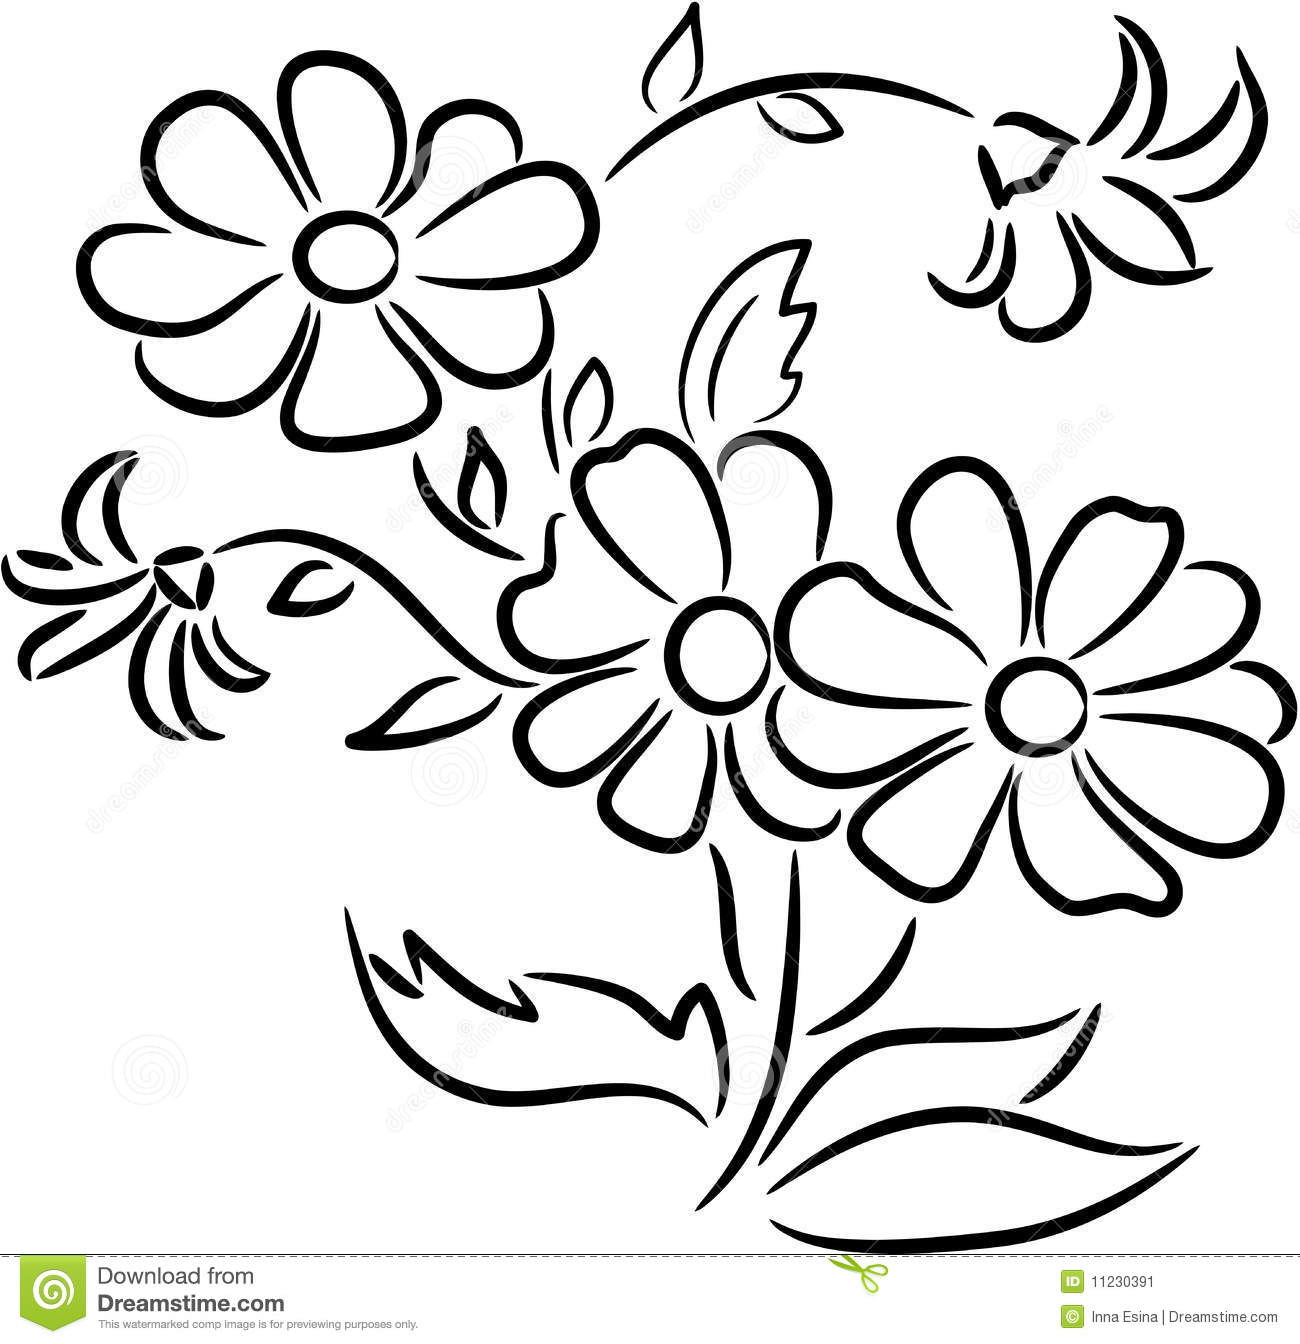 Bunch of flowers clipart black and white 3 » Clipart Station.